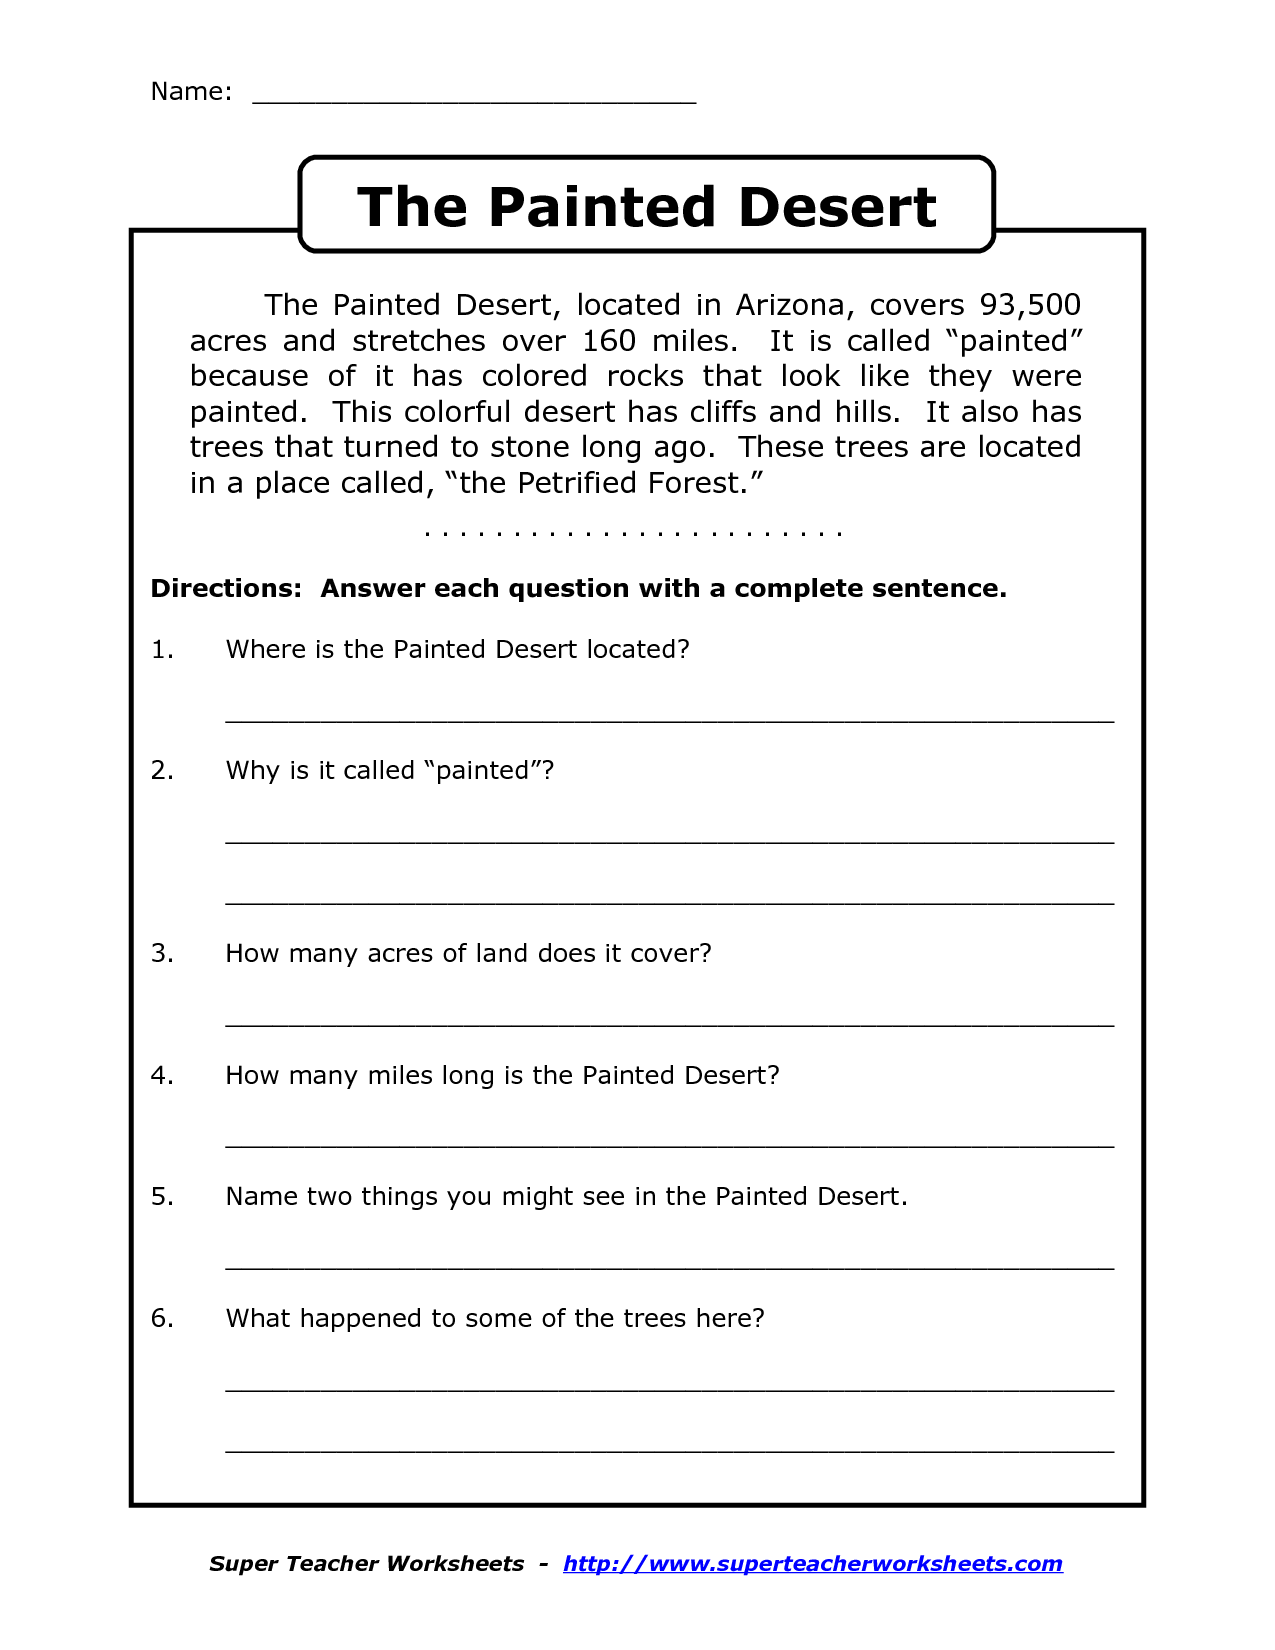 Worksheet 4th Grade Stories worksheet 4th grade short stories mikyu free 101shortstories com for graders to read elements of a story worksheet